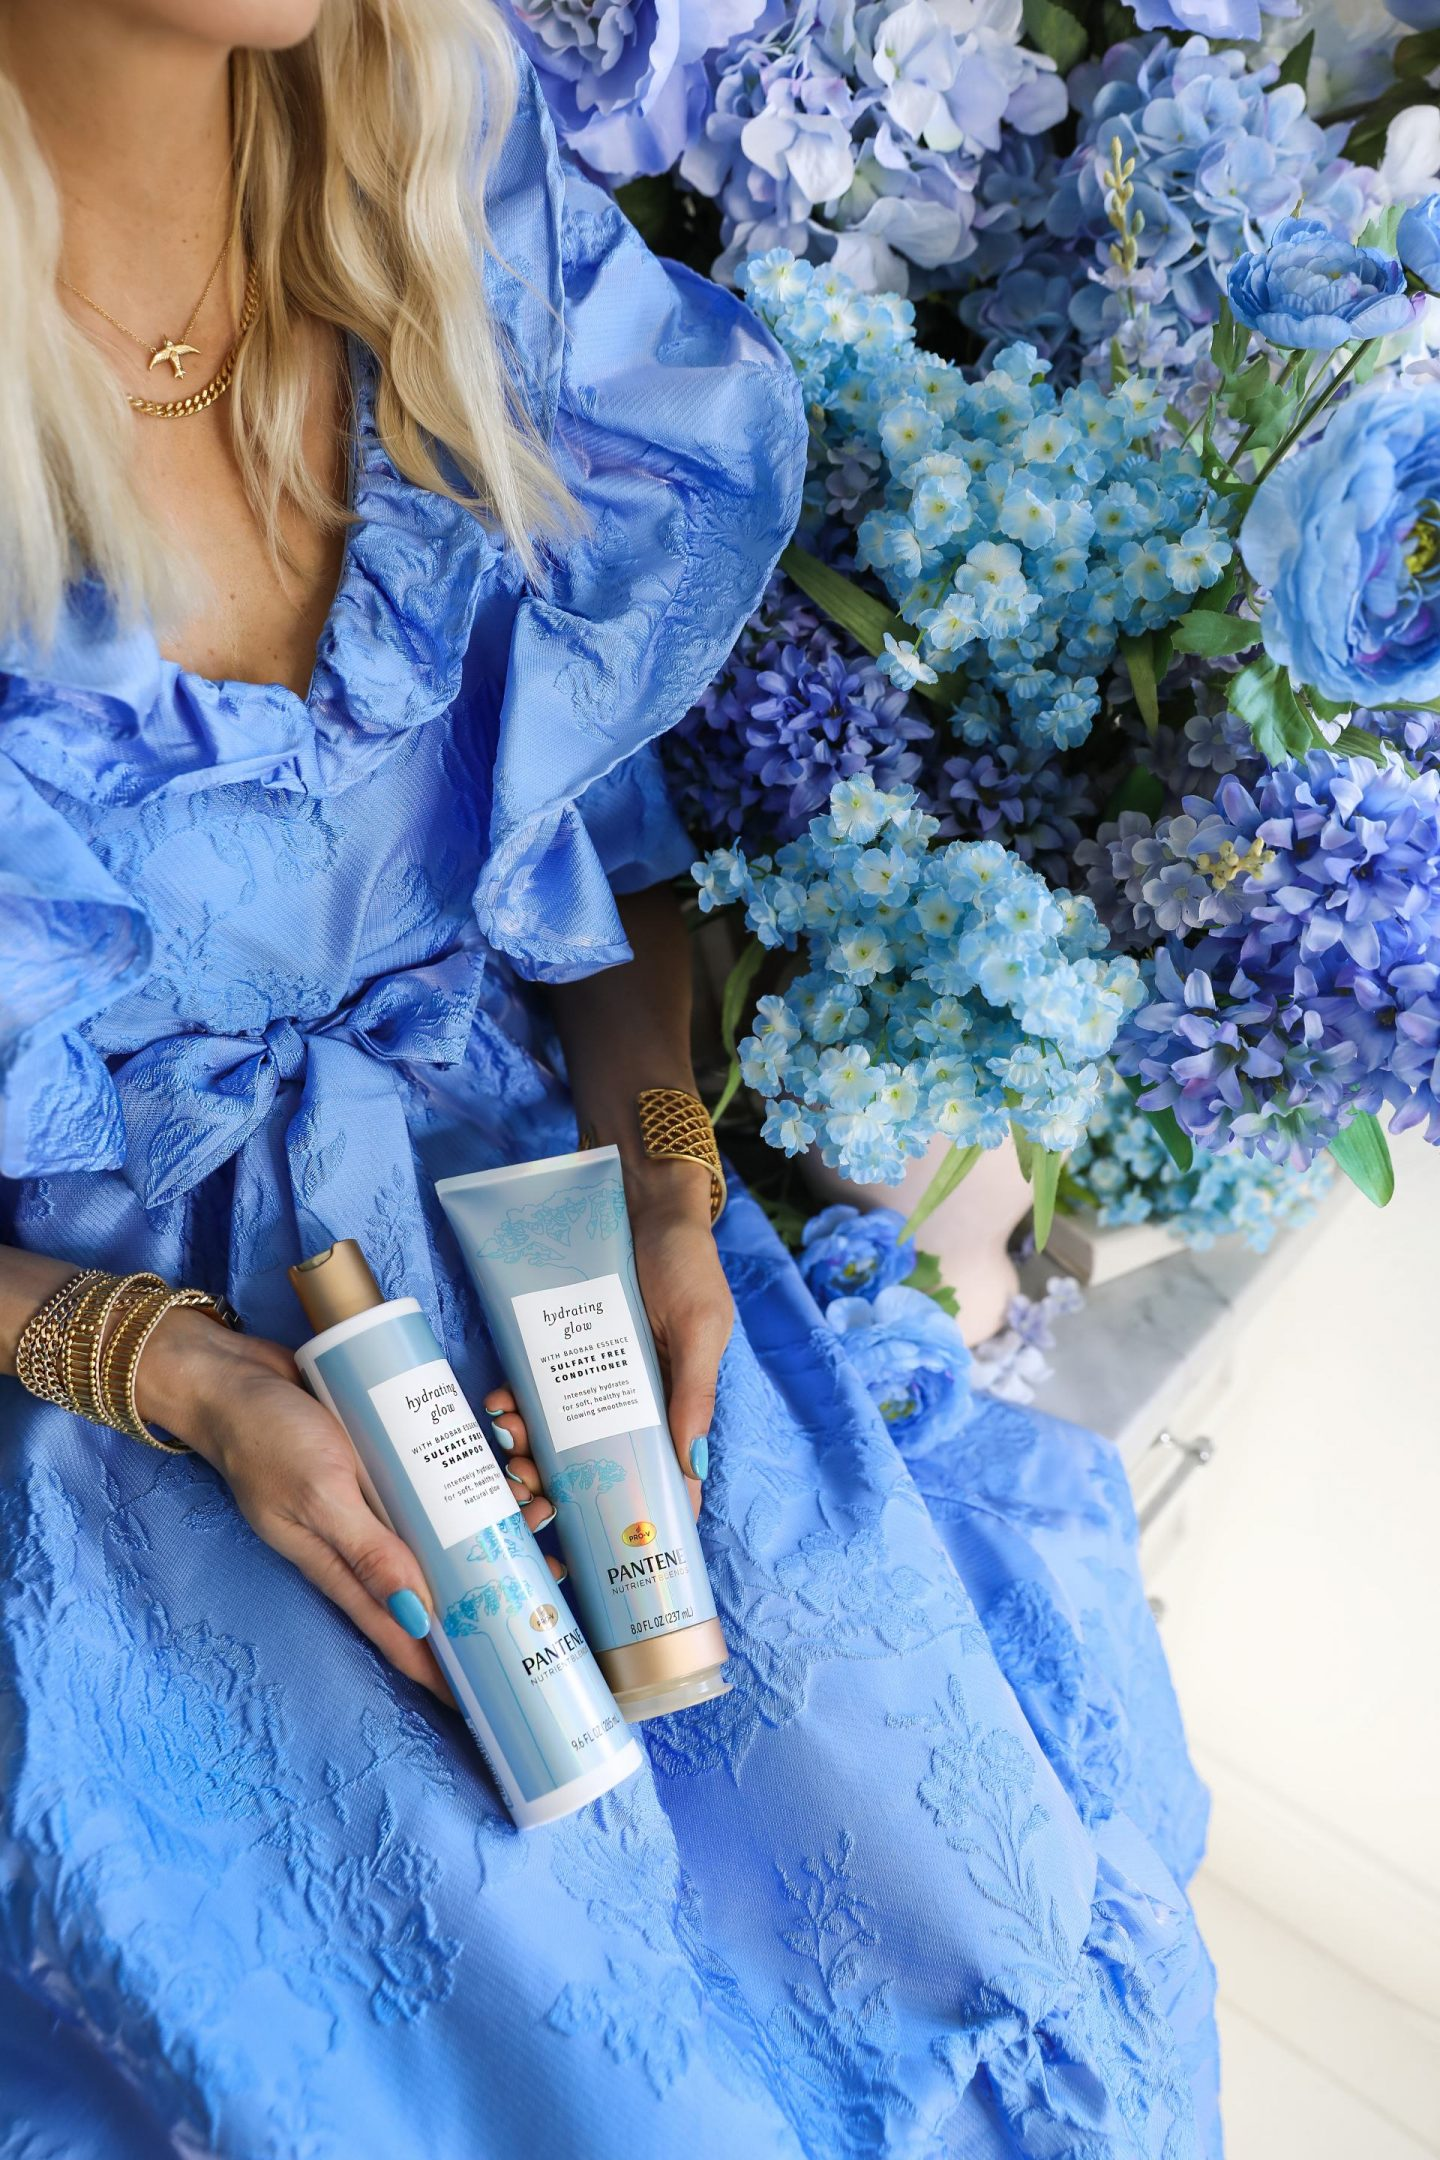 Best shampoo for dry hair by Pantene Hydrating Glow, and blue floral photoshoot styling inspiration by fashion blogger Lombard & Fifth.